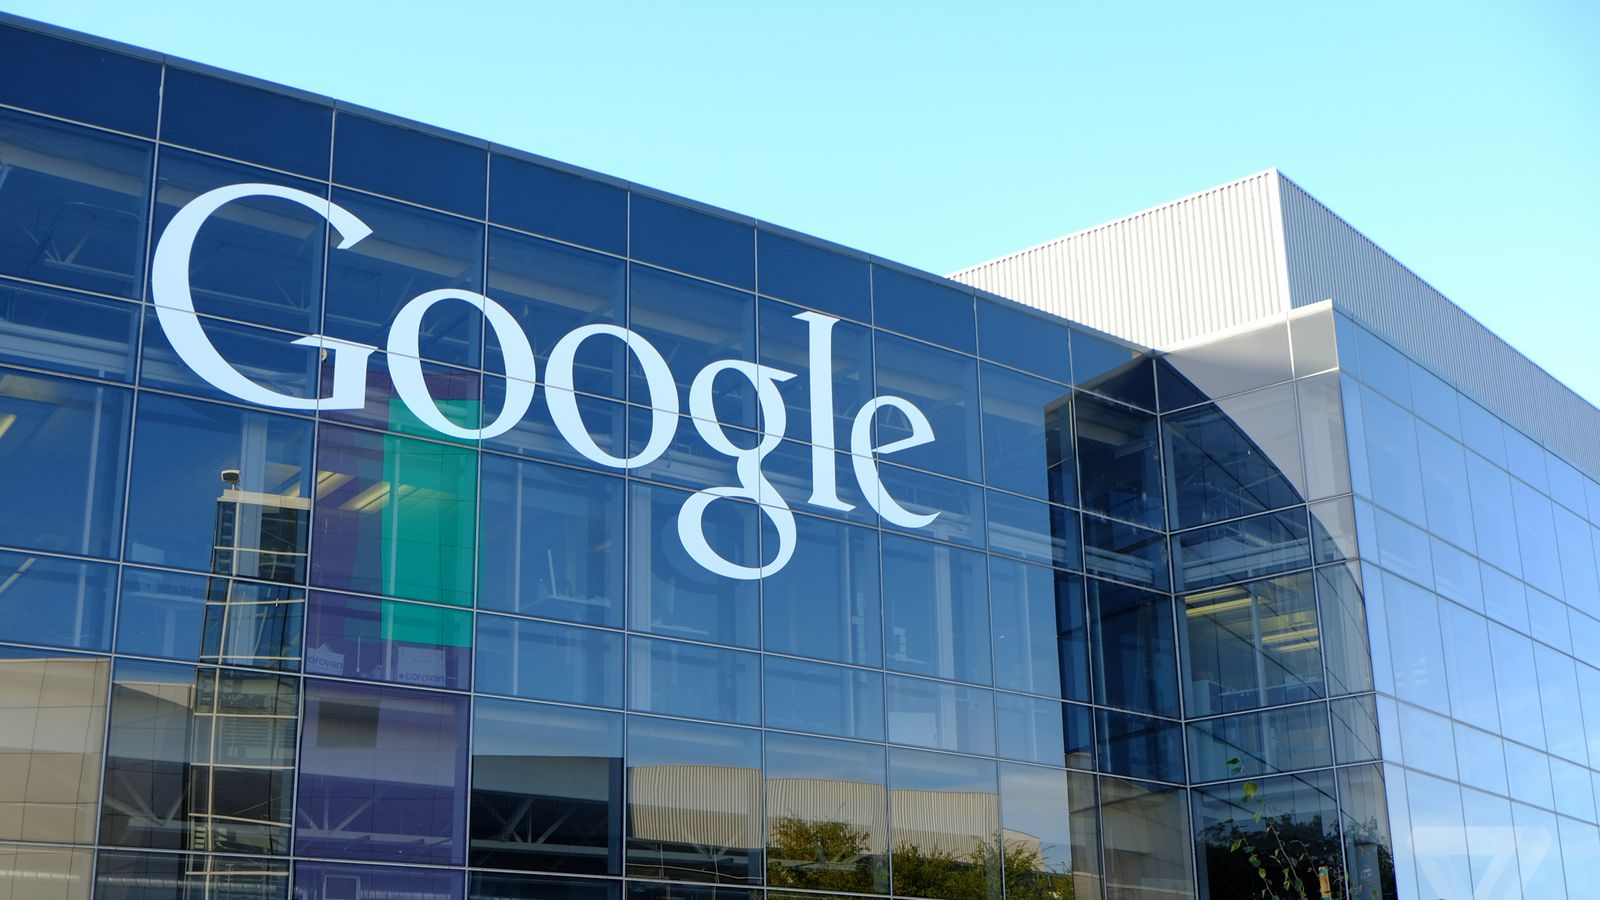 English To Italian Translator Google: Google Will Soon Unveil A New System For Real-time Voice